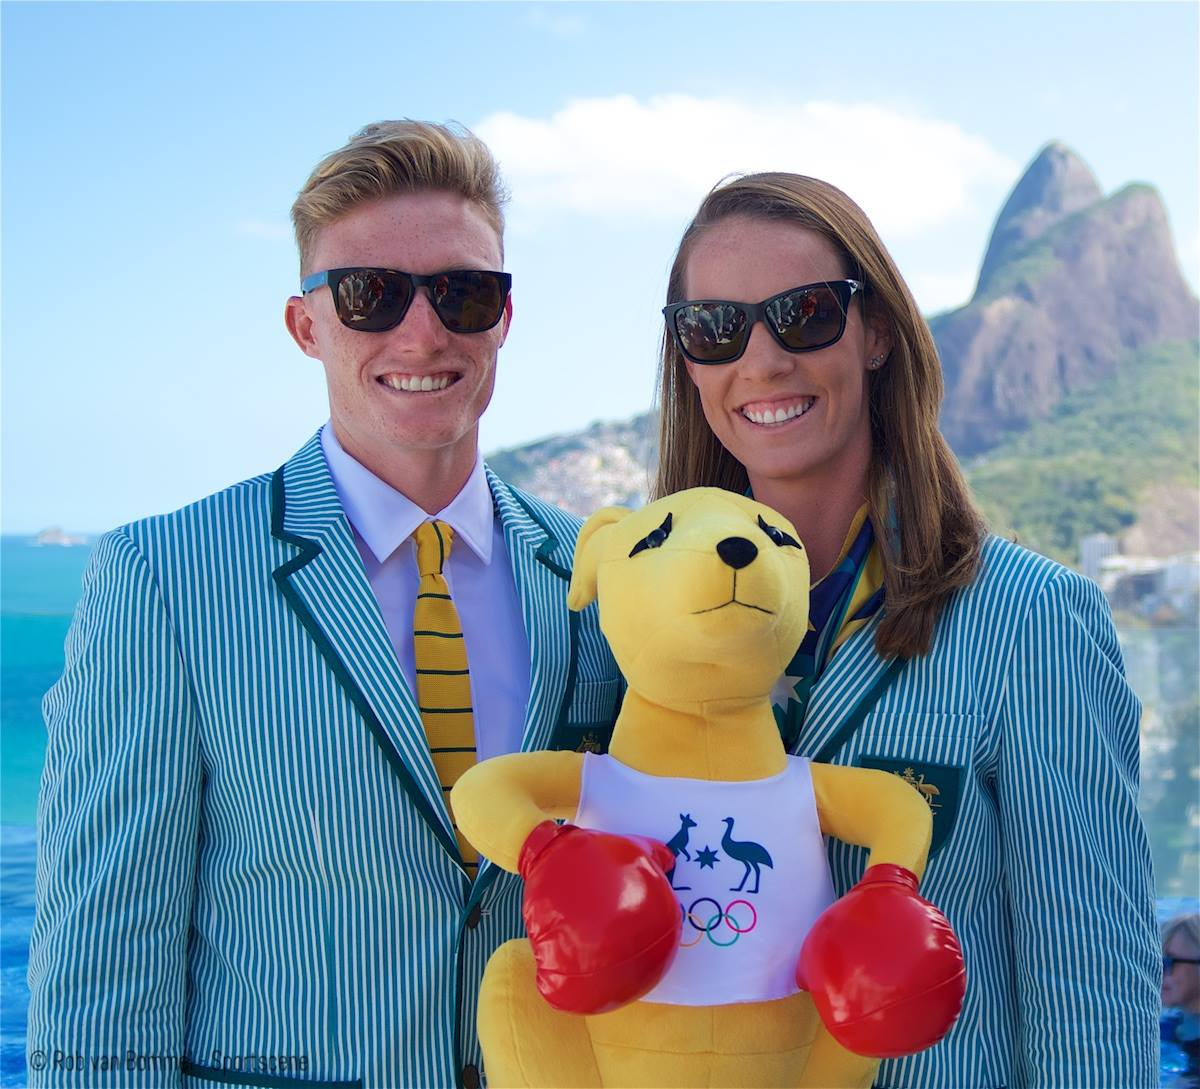 Jordan & Alyce in Rio - Photo Sportscene Rob van Bommel